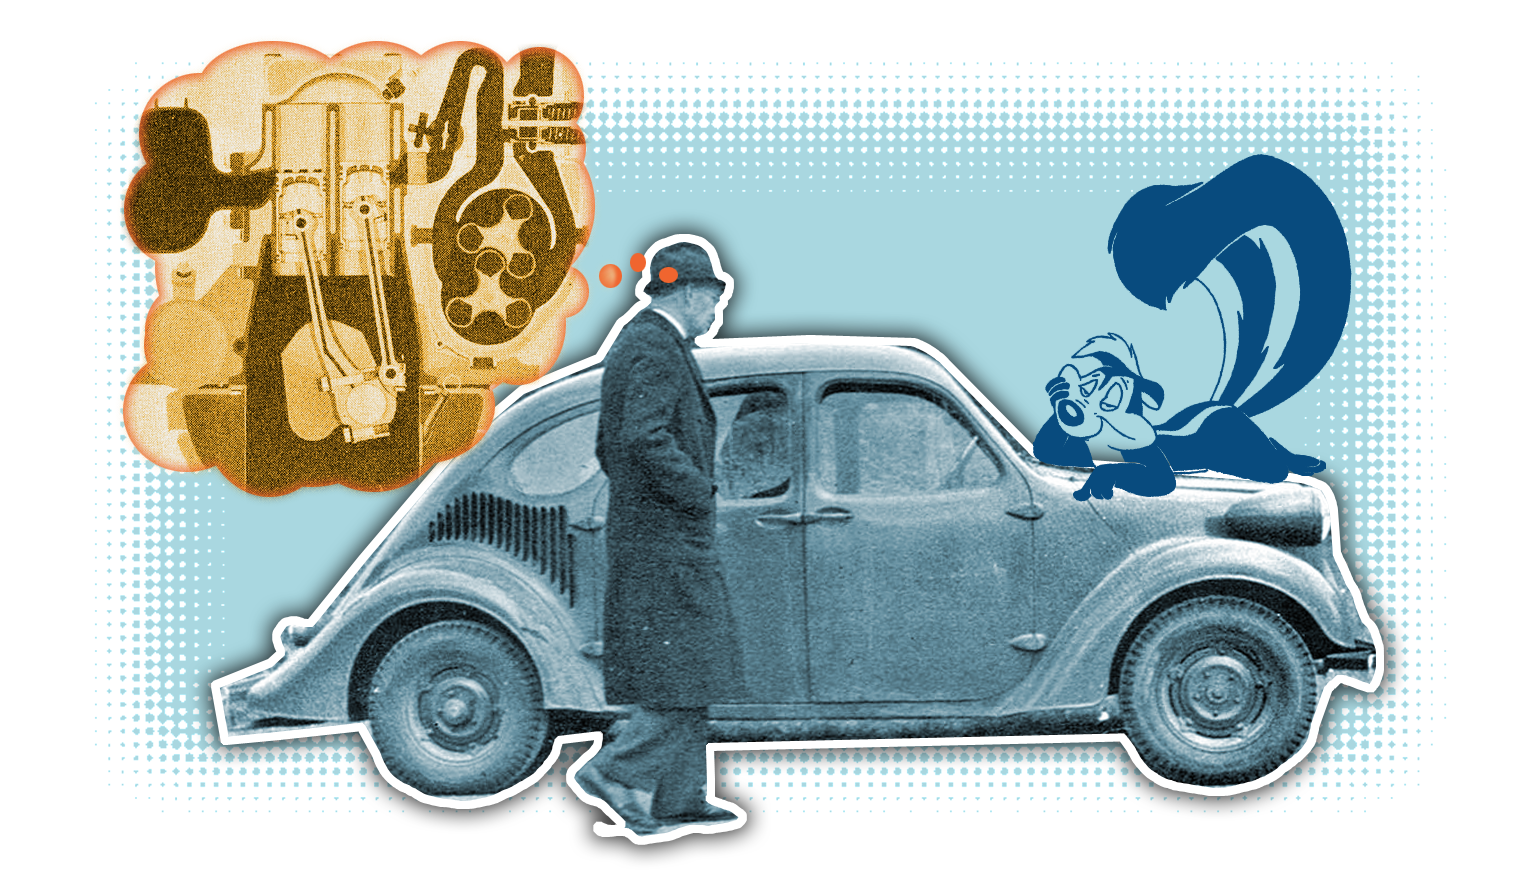 GM's 1930s Rear-Engine Experimental Cars Had The Weirdest And Stinkiest Engines Ever